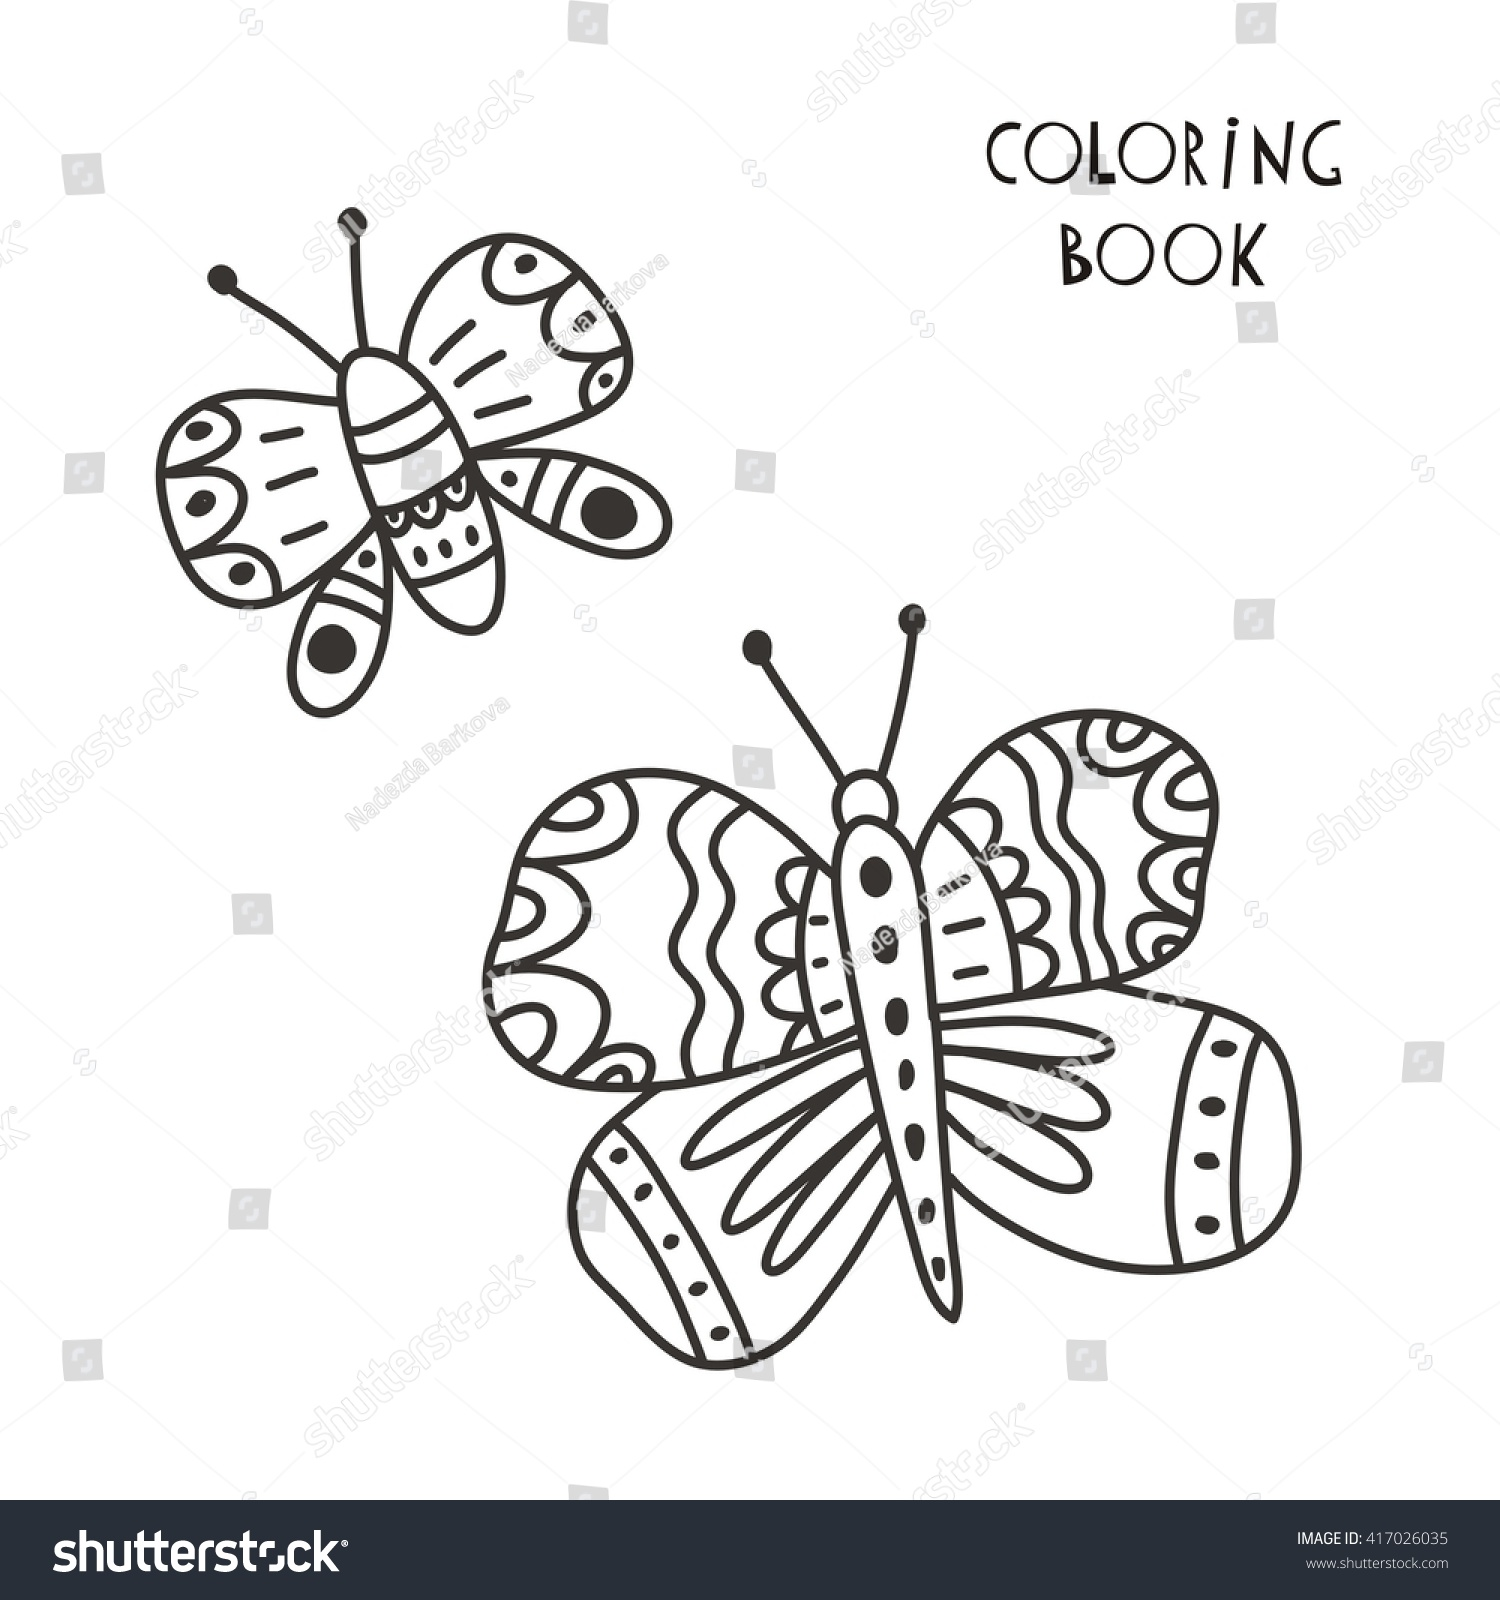 Free Coloring Pages for Kids  Free Printable Worksheets